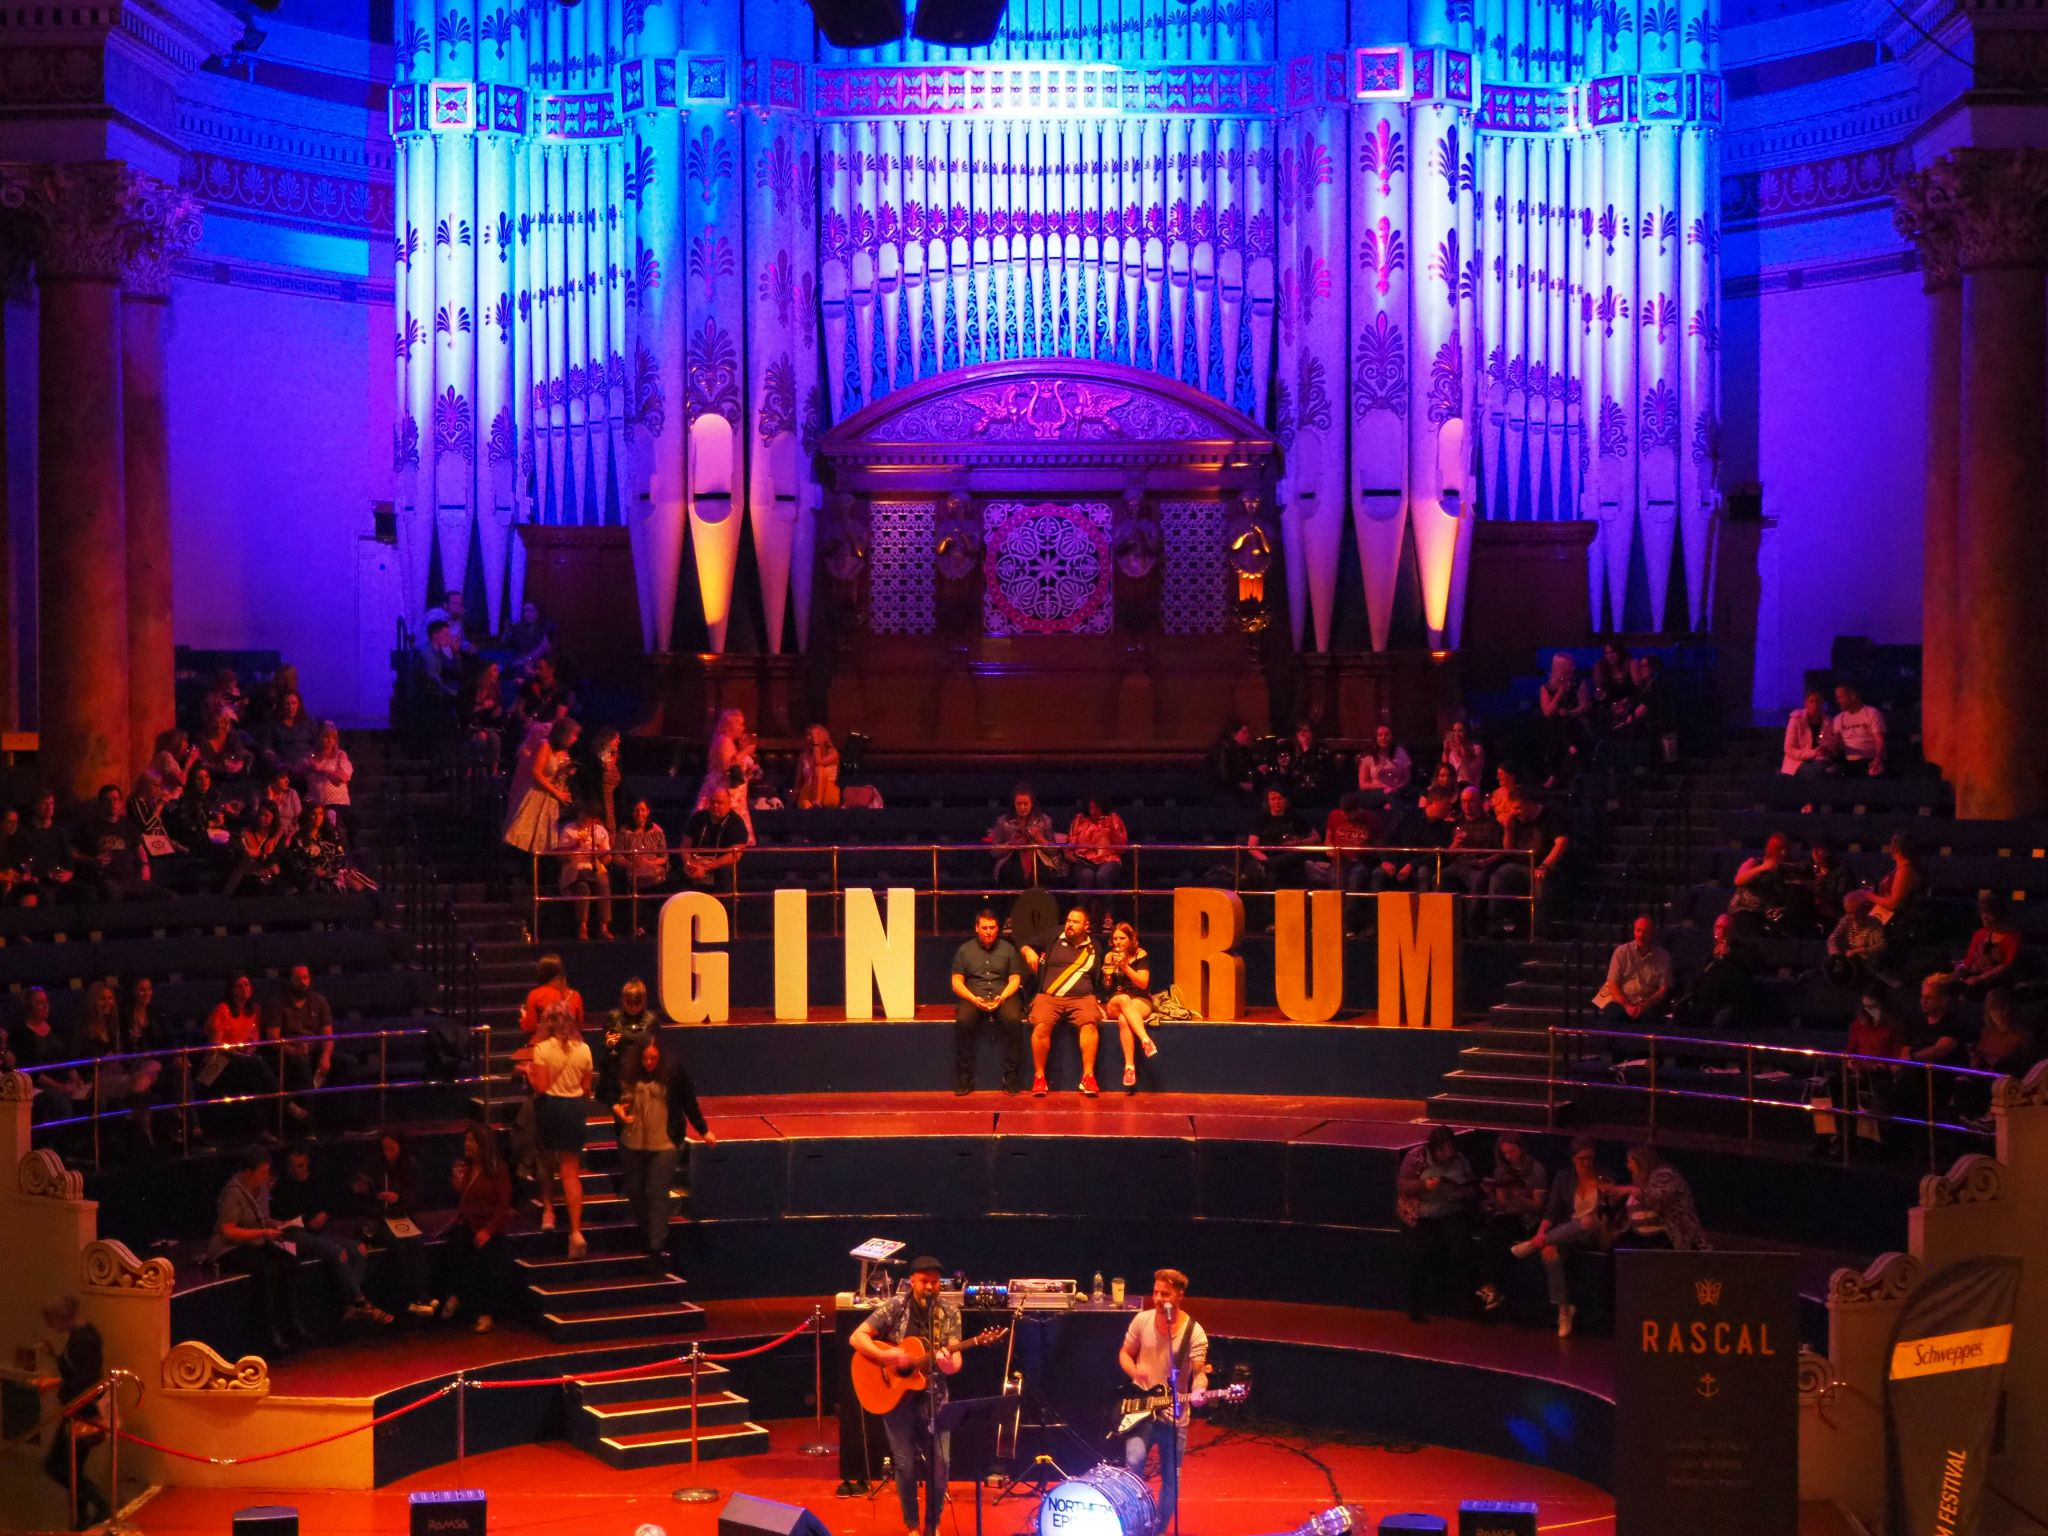 inside the Gin and Rum Festival venue